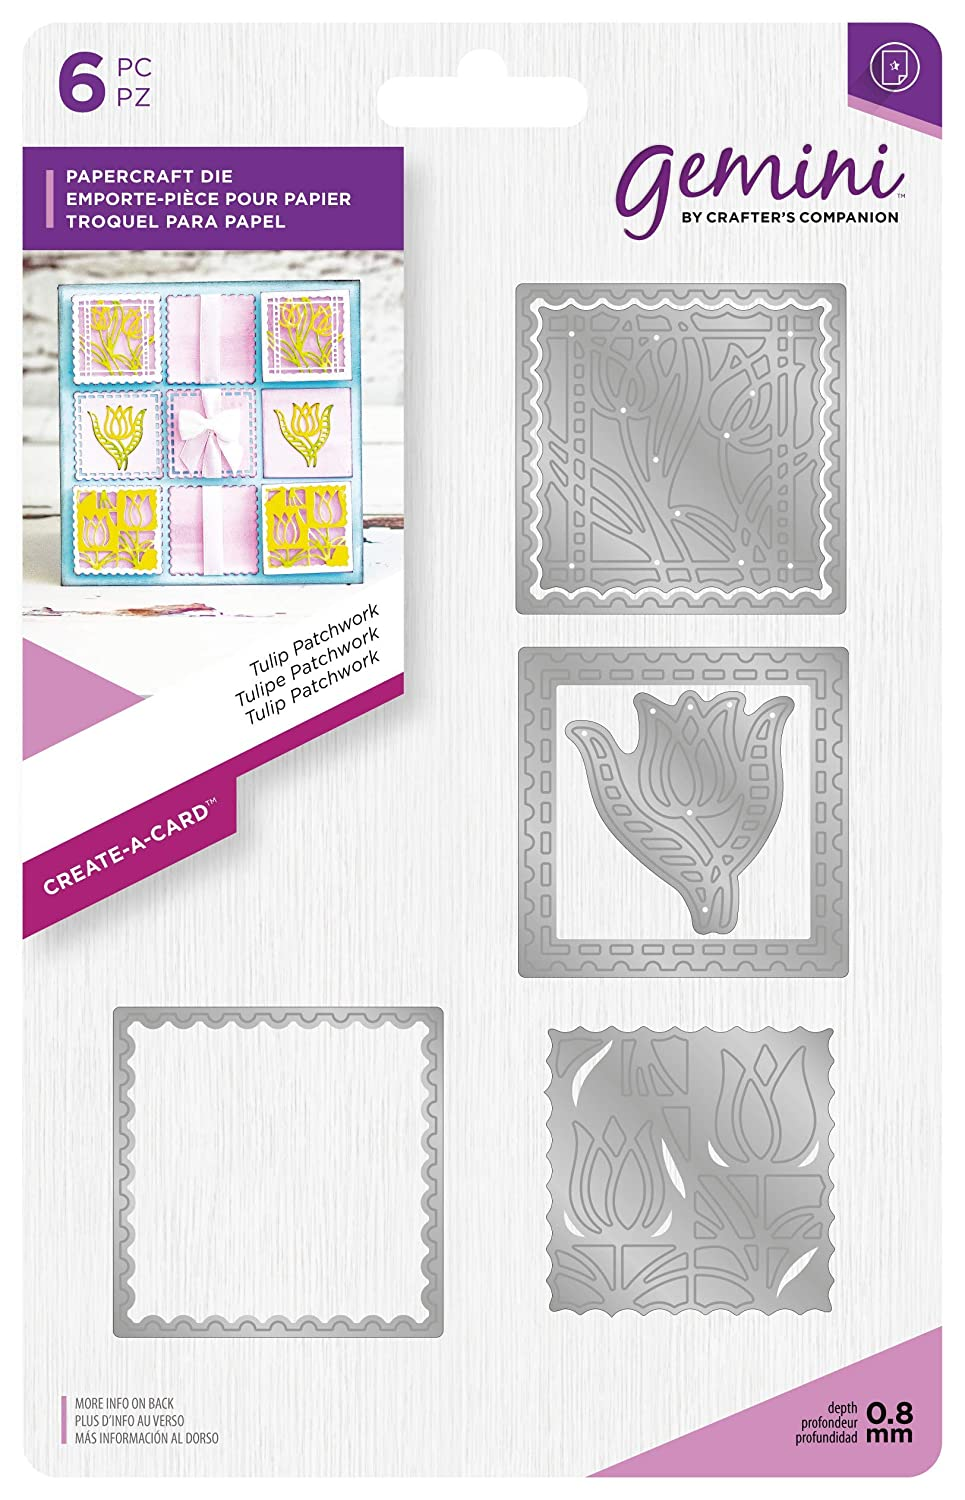 Gemini Die-Create-a-Card-Tulip Patchwork, Silver, Various Crafter's Companion GEM-MD-CAD-TULP